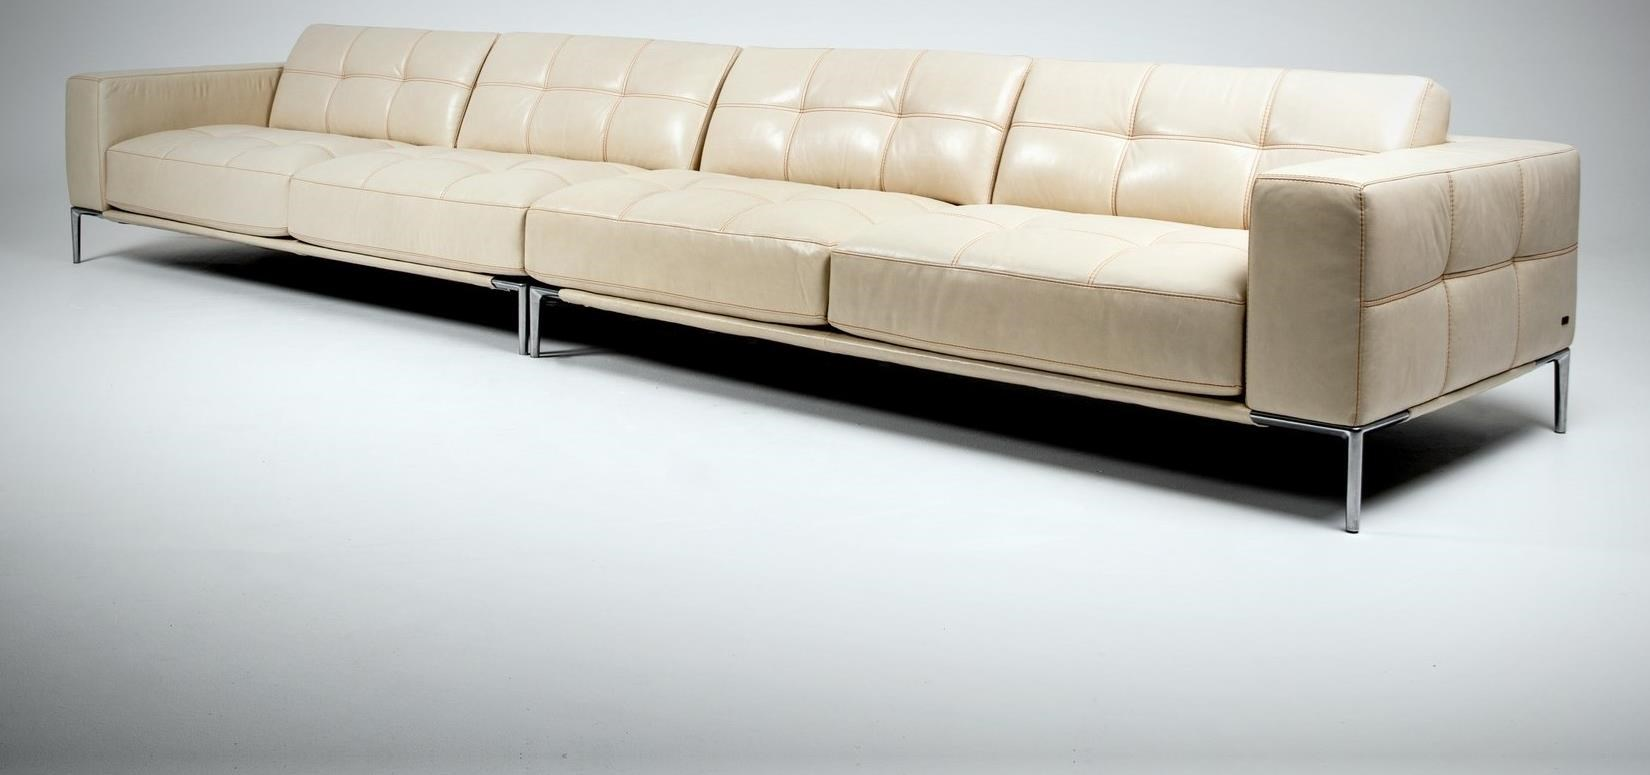 Barcelona 4-Seat Sofa by American Leather at Baer's Furniture